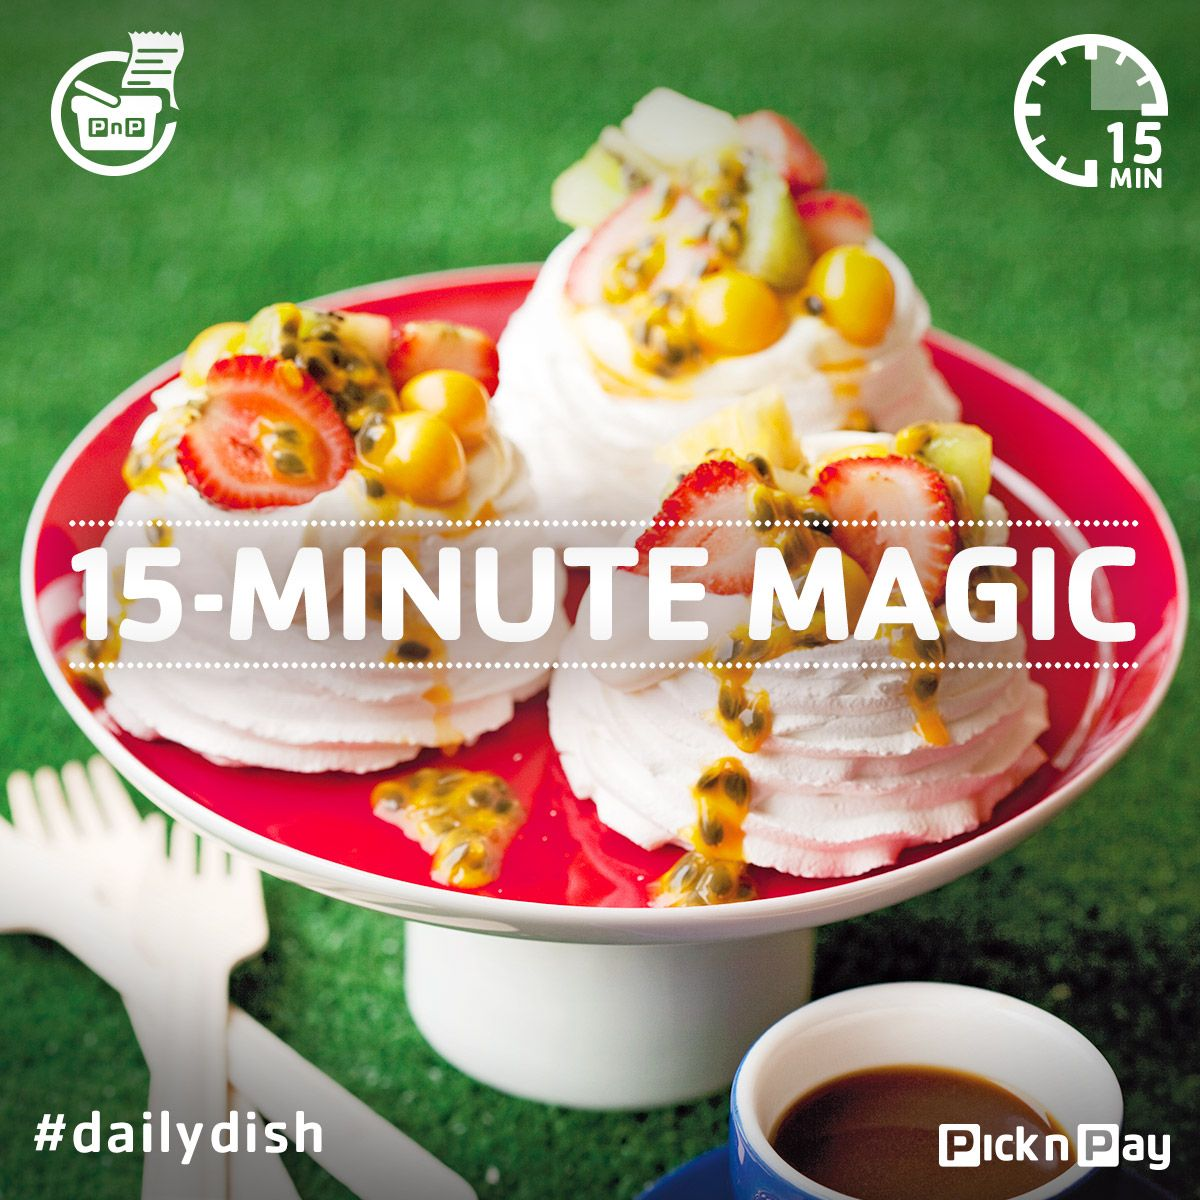 Craving a sweet treat? Have one in seconds, make this fruity pavlova #dailydish #picknpay #freshliving